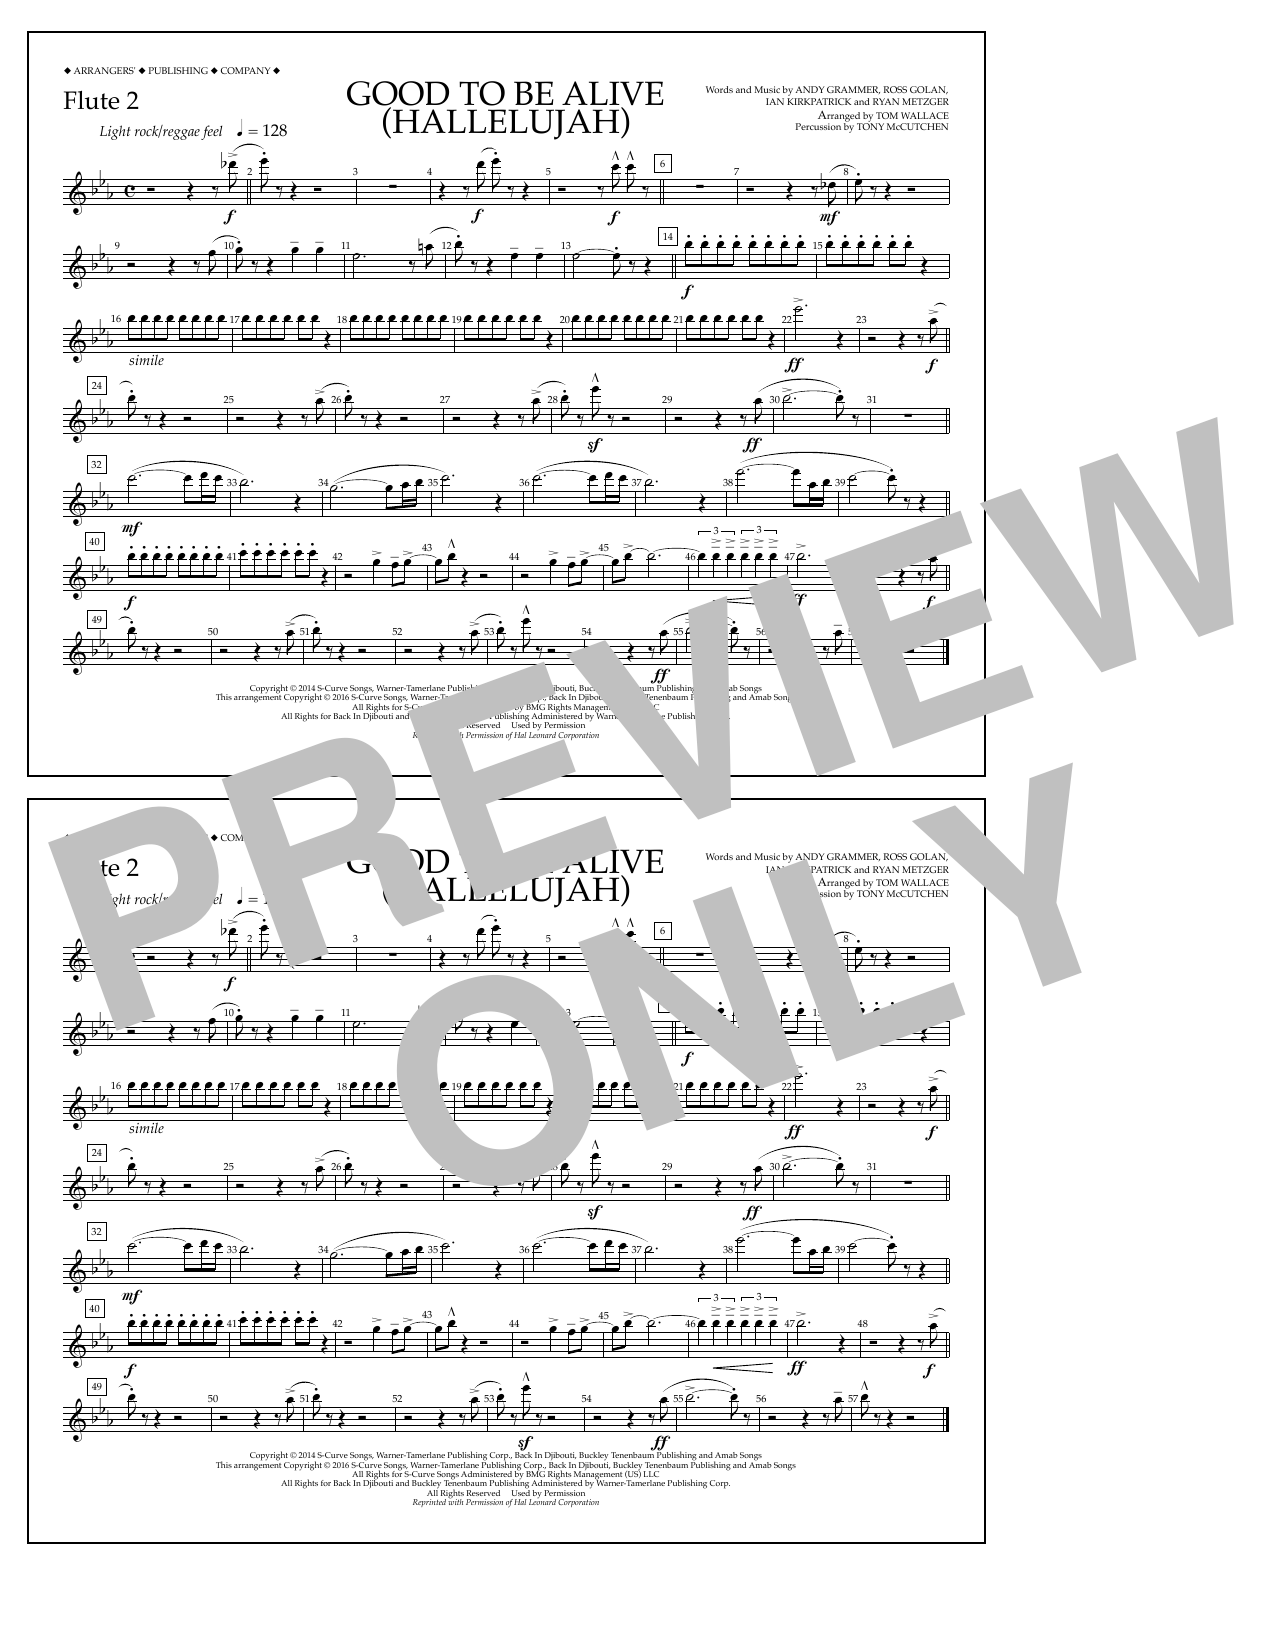 Good to Be Alive (Hallelujah) - Flute 2 Sheet Music